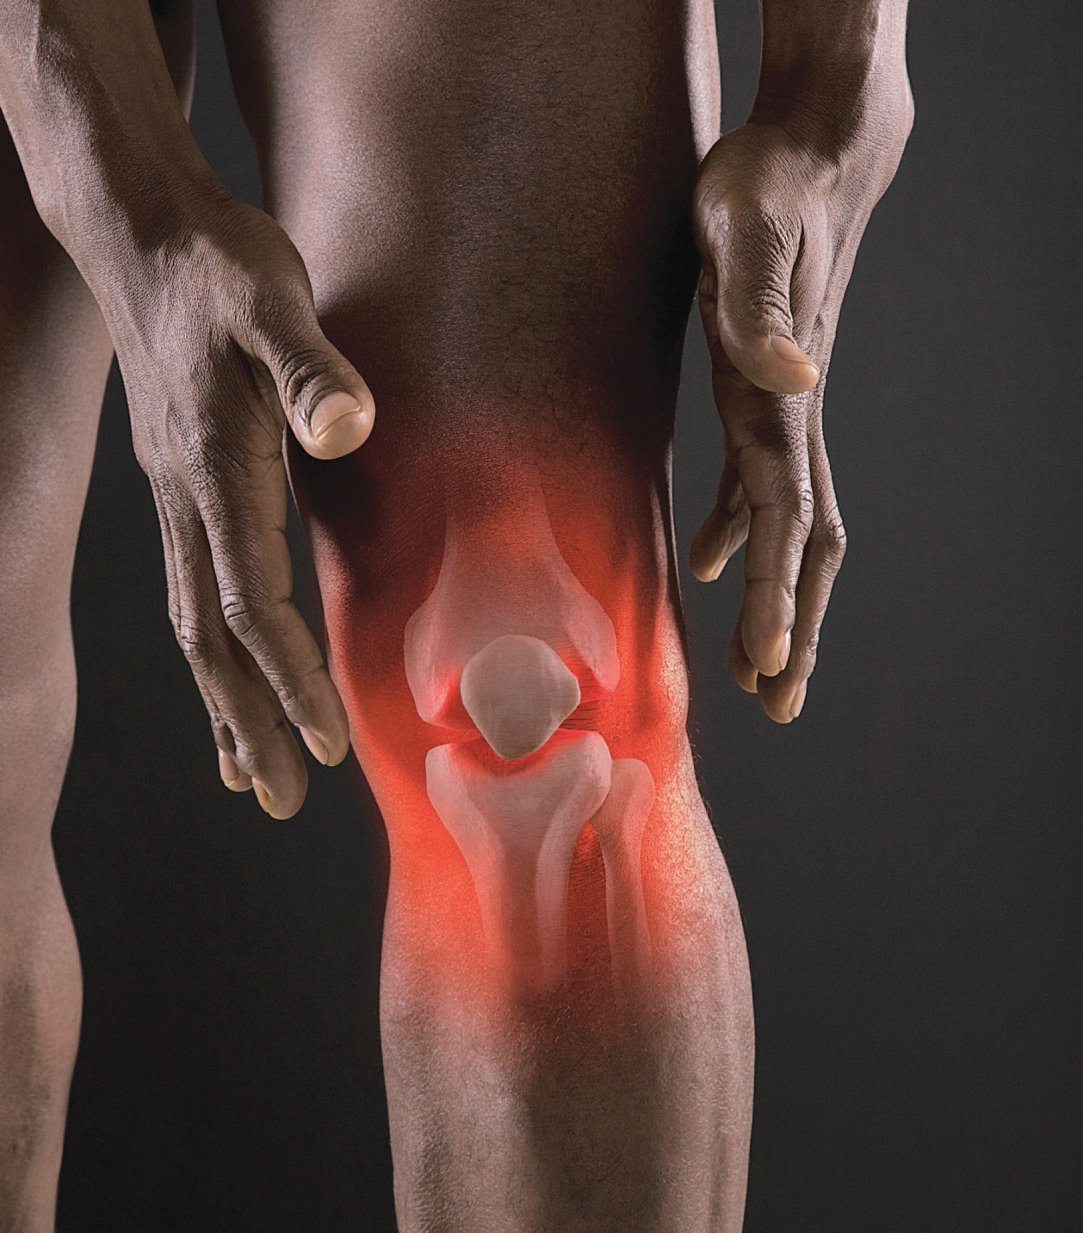 Skip joint supplements, like glucosamine or chondroitin.